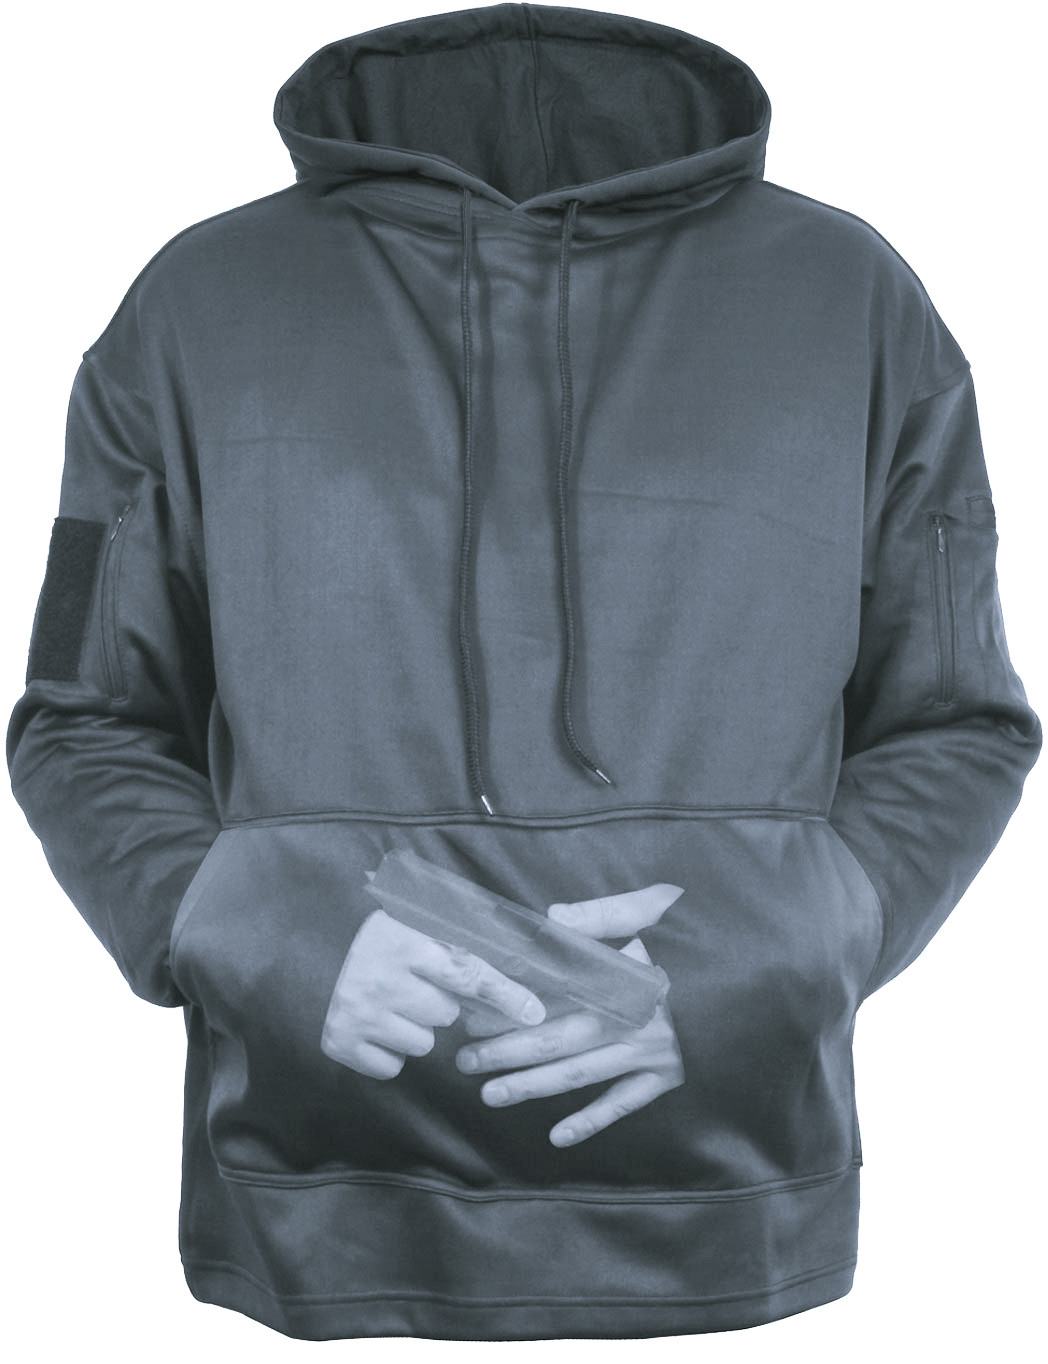 Gun Metal Grey Concealed Carry Tactical Hooded Sweatshirt 2bfe0c2119c